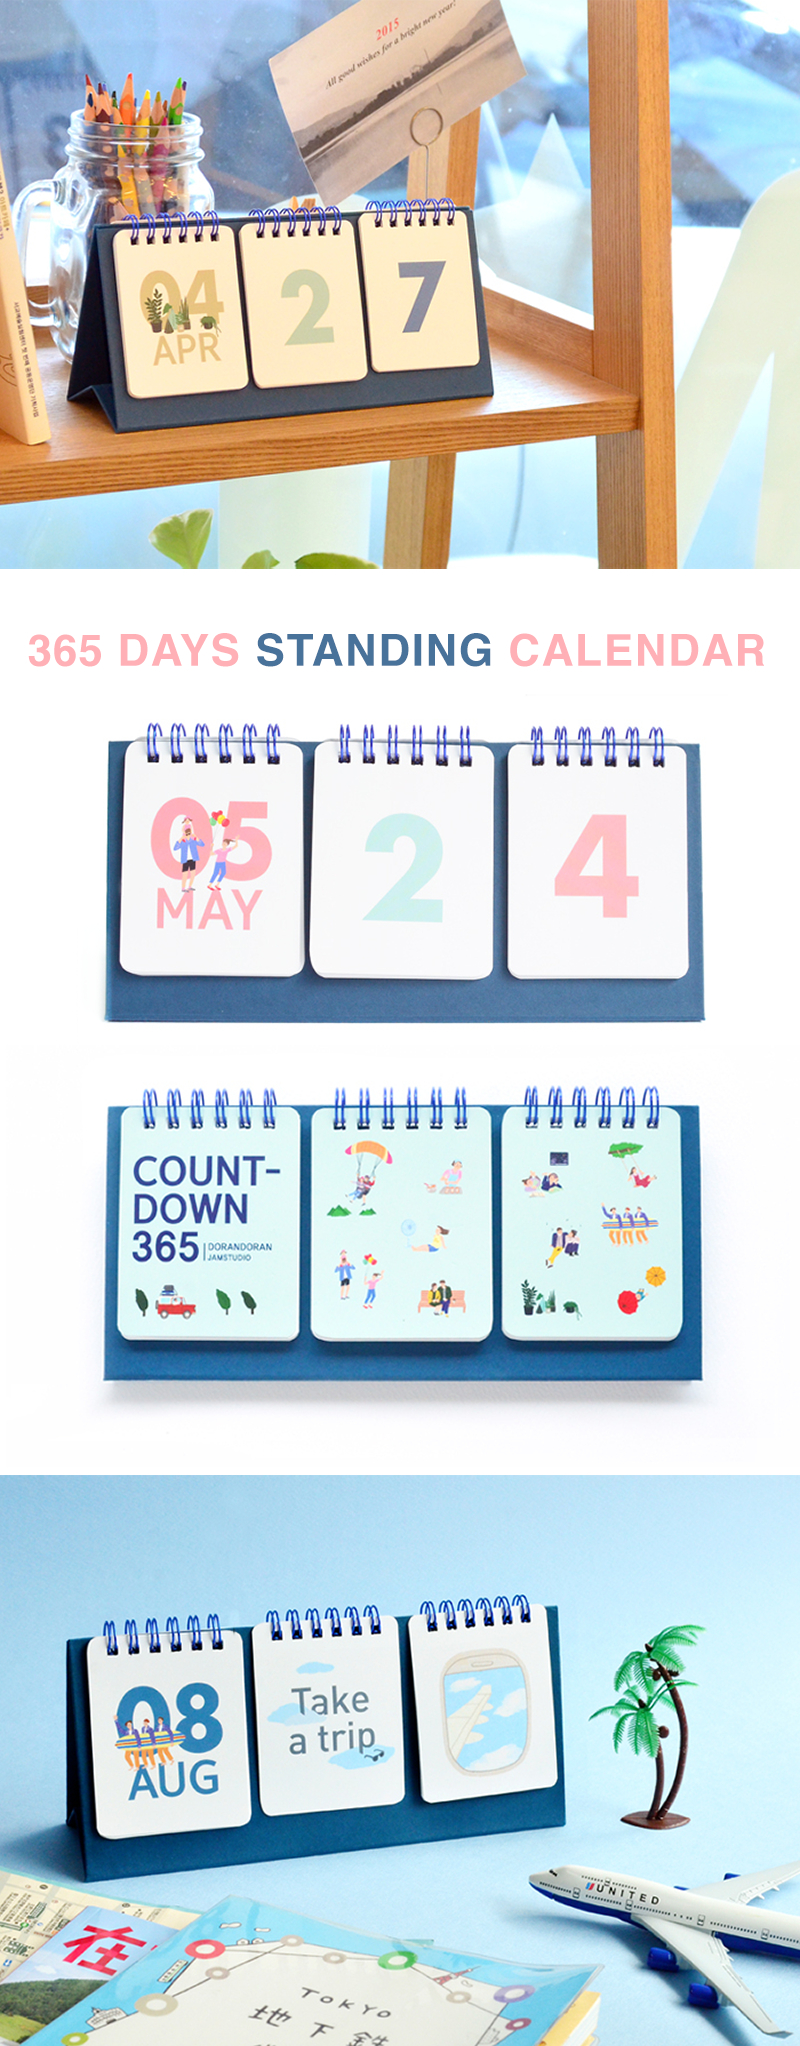 A Calendar That Will Last You Years And Years To Come? Yes Free 365 Day Countdown Calendar Days